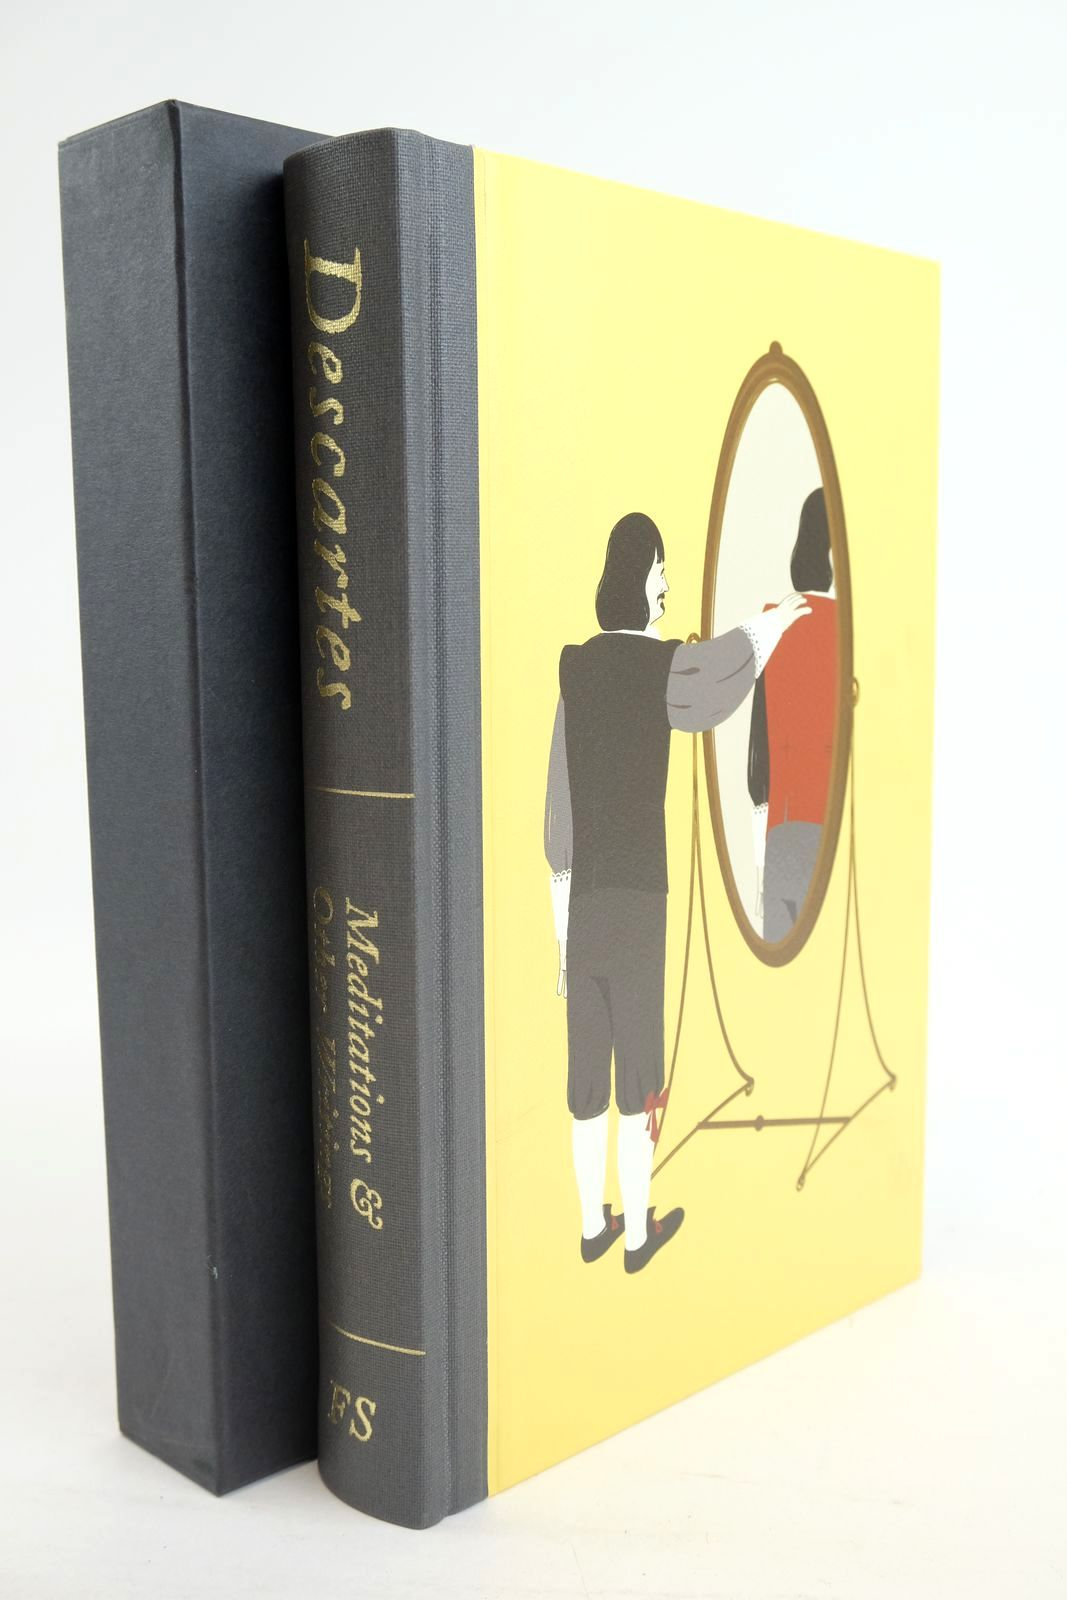 Photo of MEDITATIONS AND OTHER WRITINGS written by Descartes, Rene illustrated by Shout, published by Folio Society (STOCK CODE: 1320030)  for sale by Stella & Rose's Books